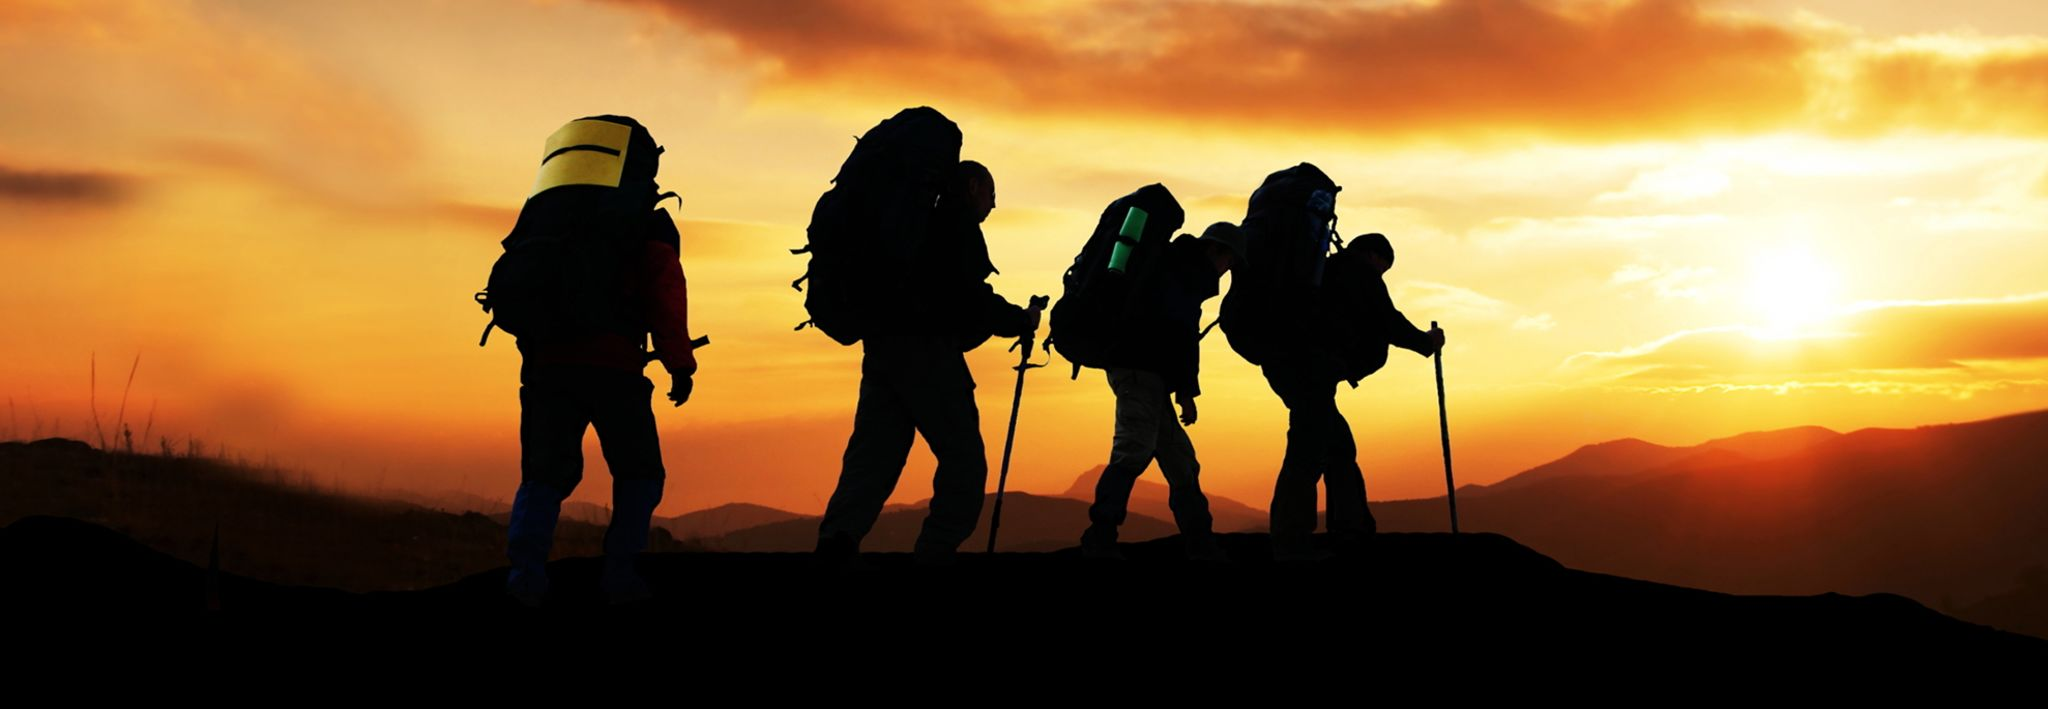 College students hiking at sunset.